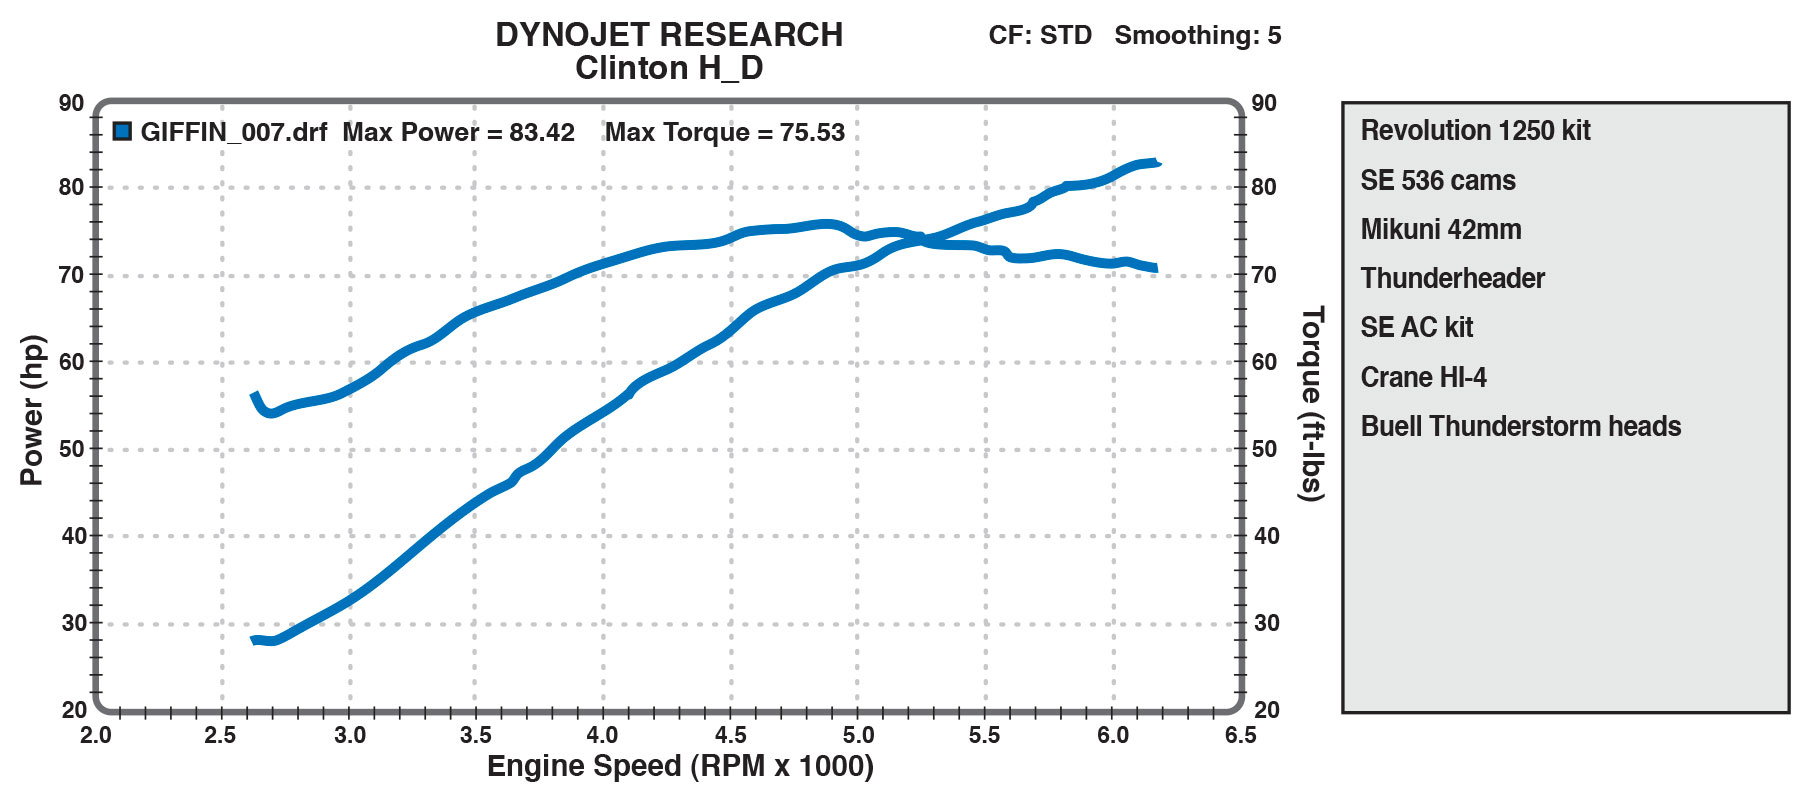 1250cc dyno chart from Clinton H-D